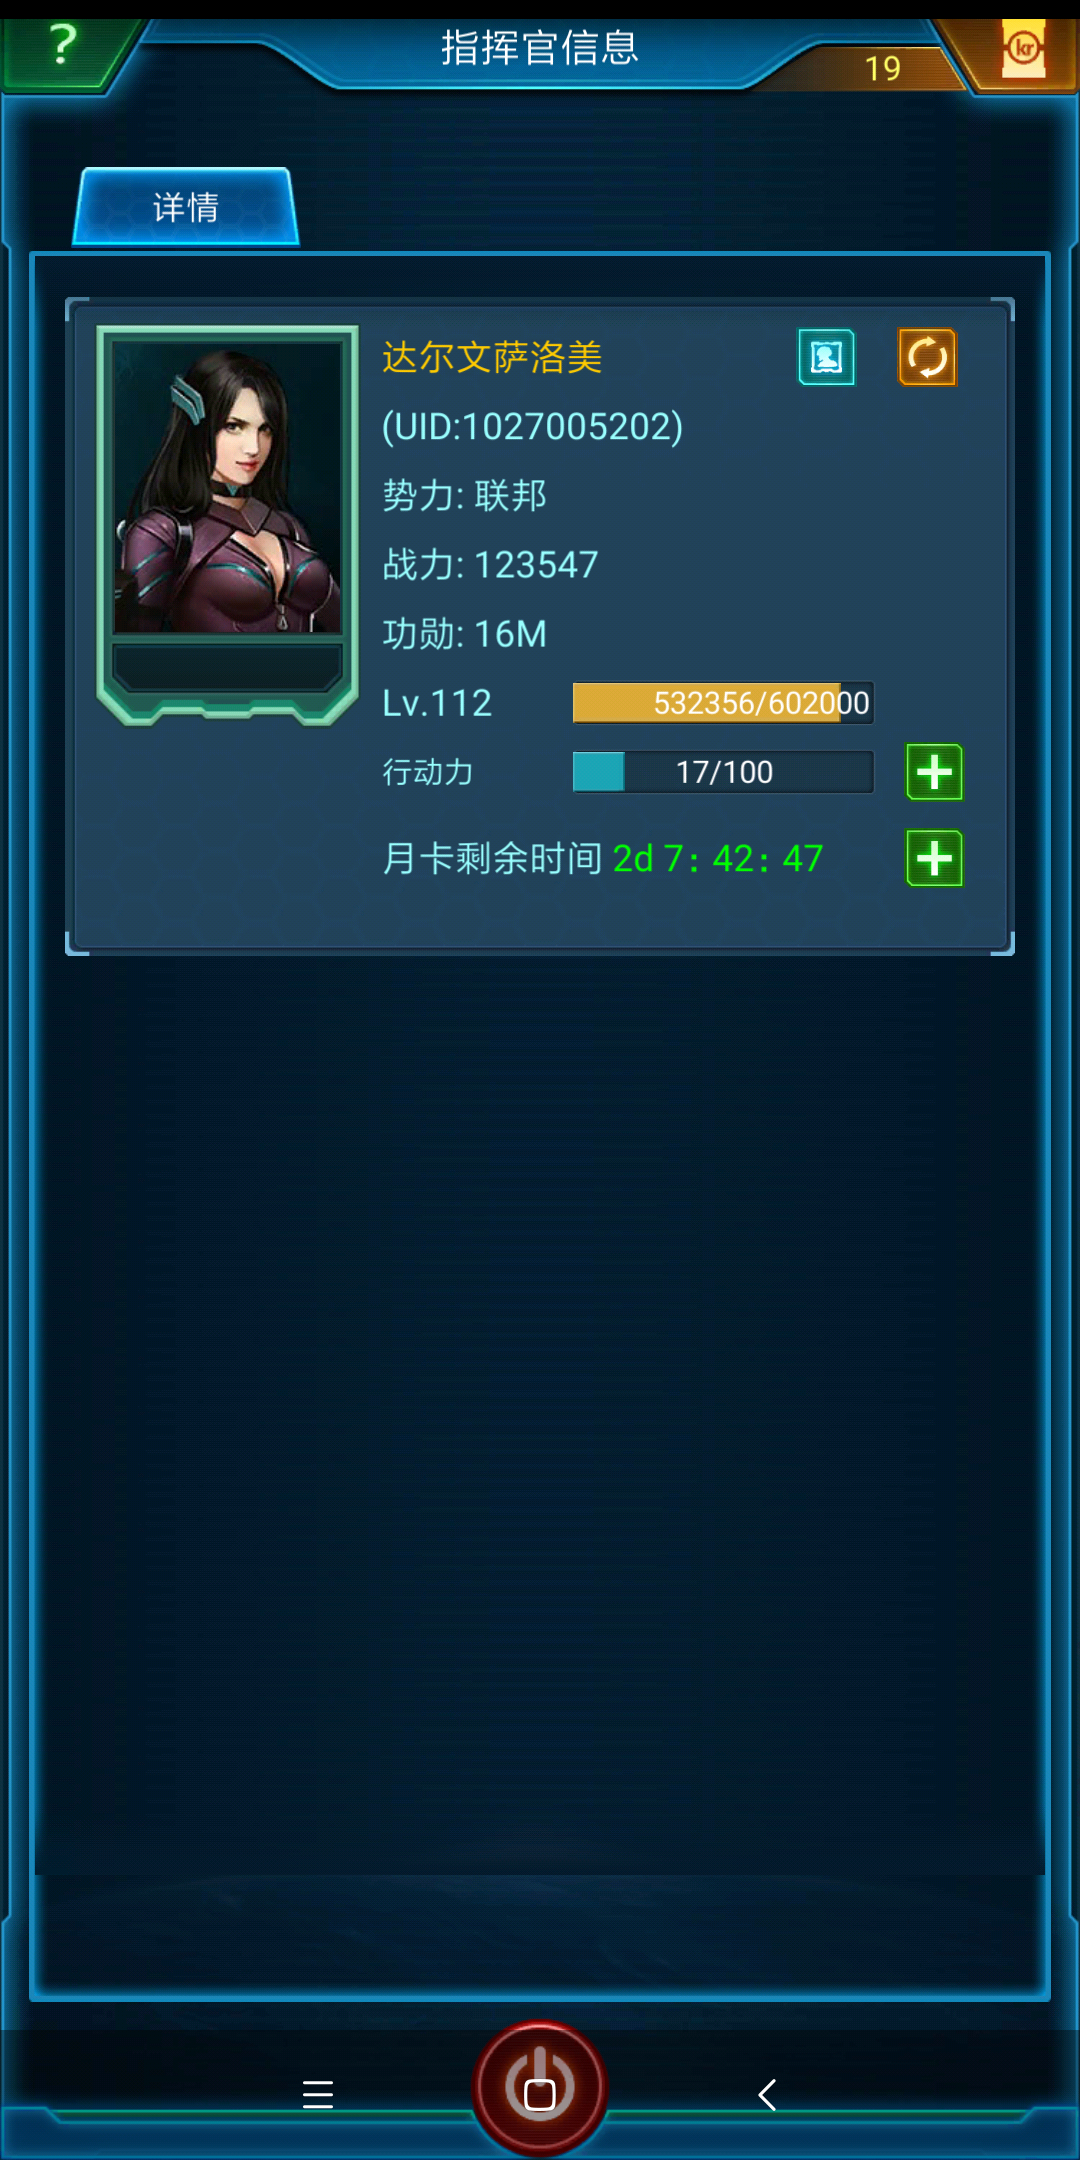 Screenshot_2018-09-29-16-17-12-804_com.jedigames.p16s.luobo.png